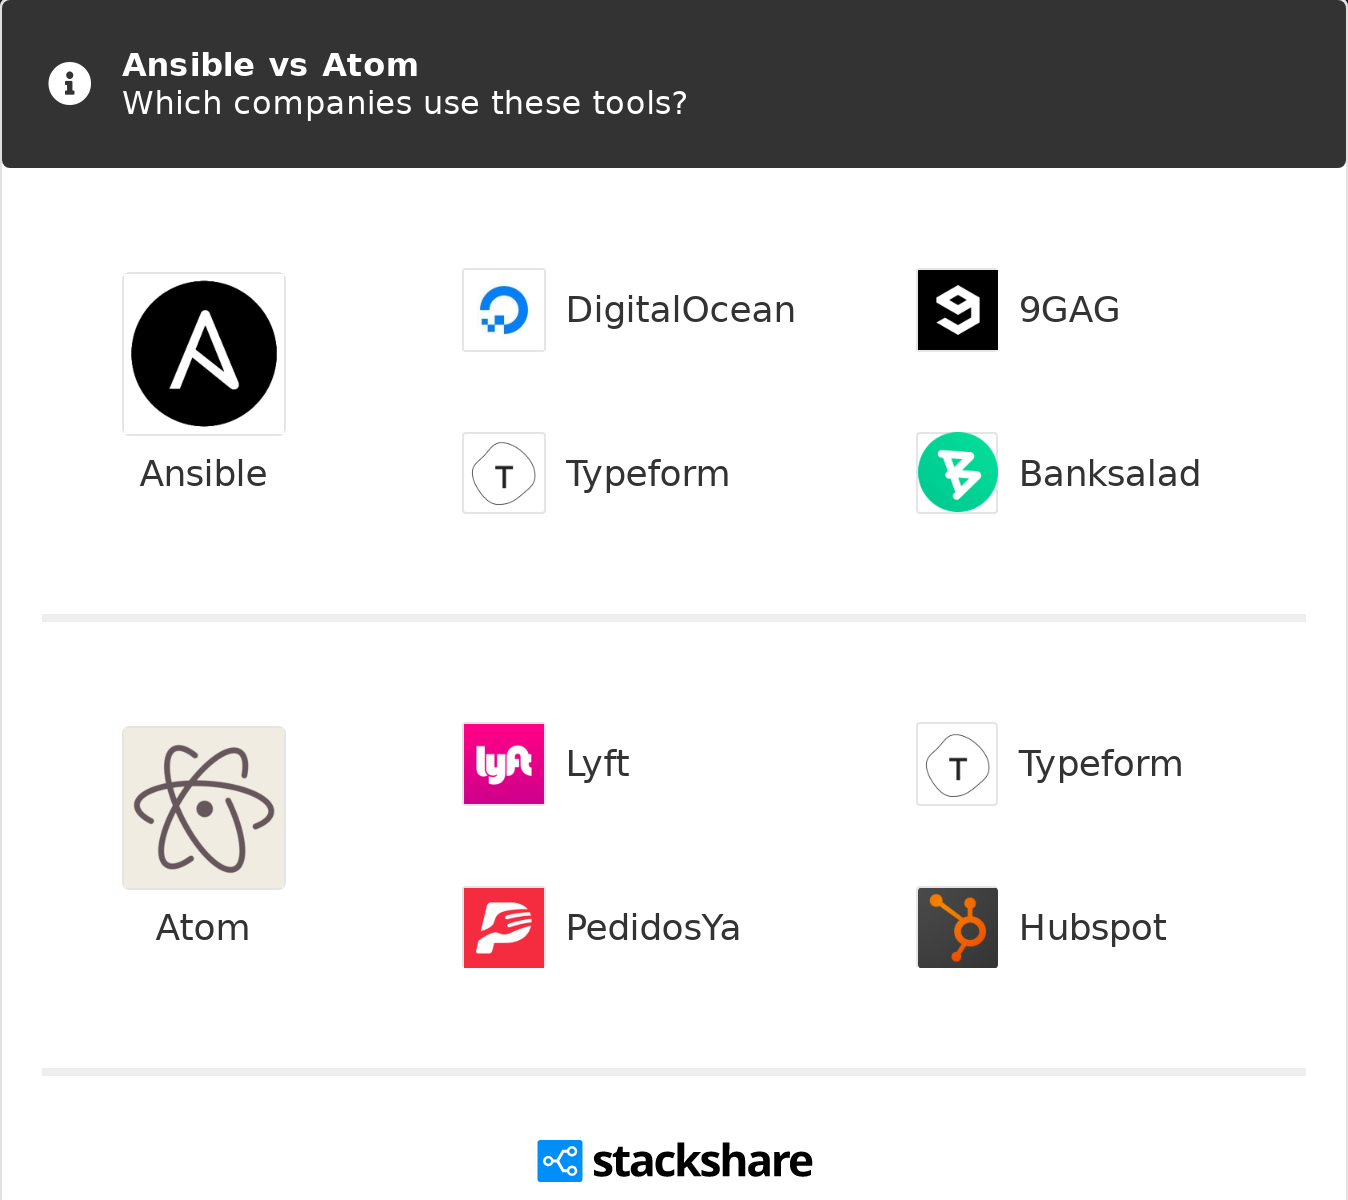 Ansible vs Atom | What are the differences?